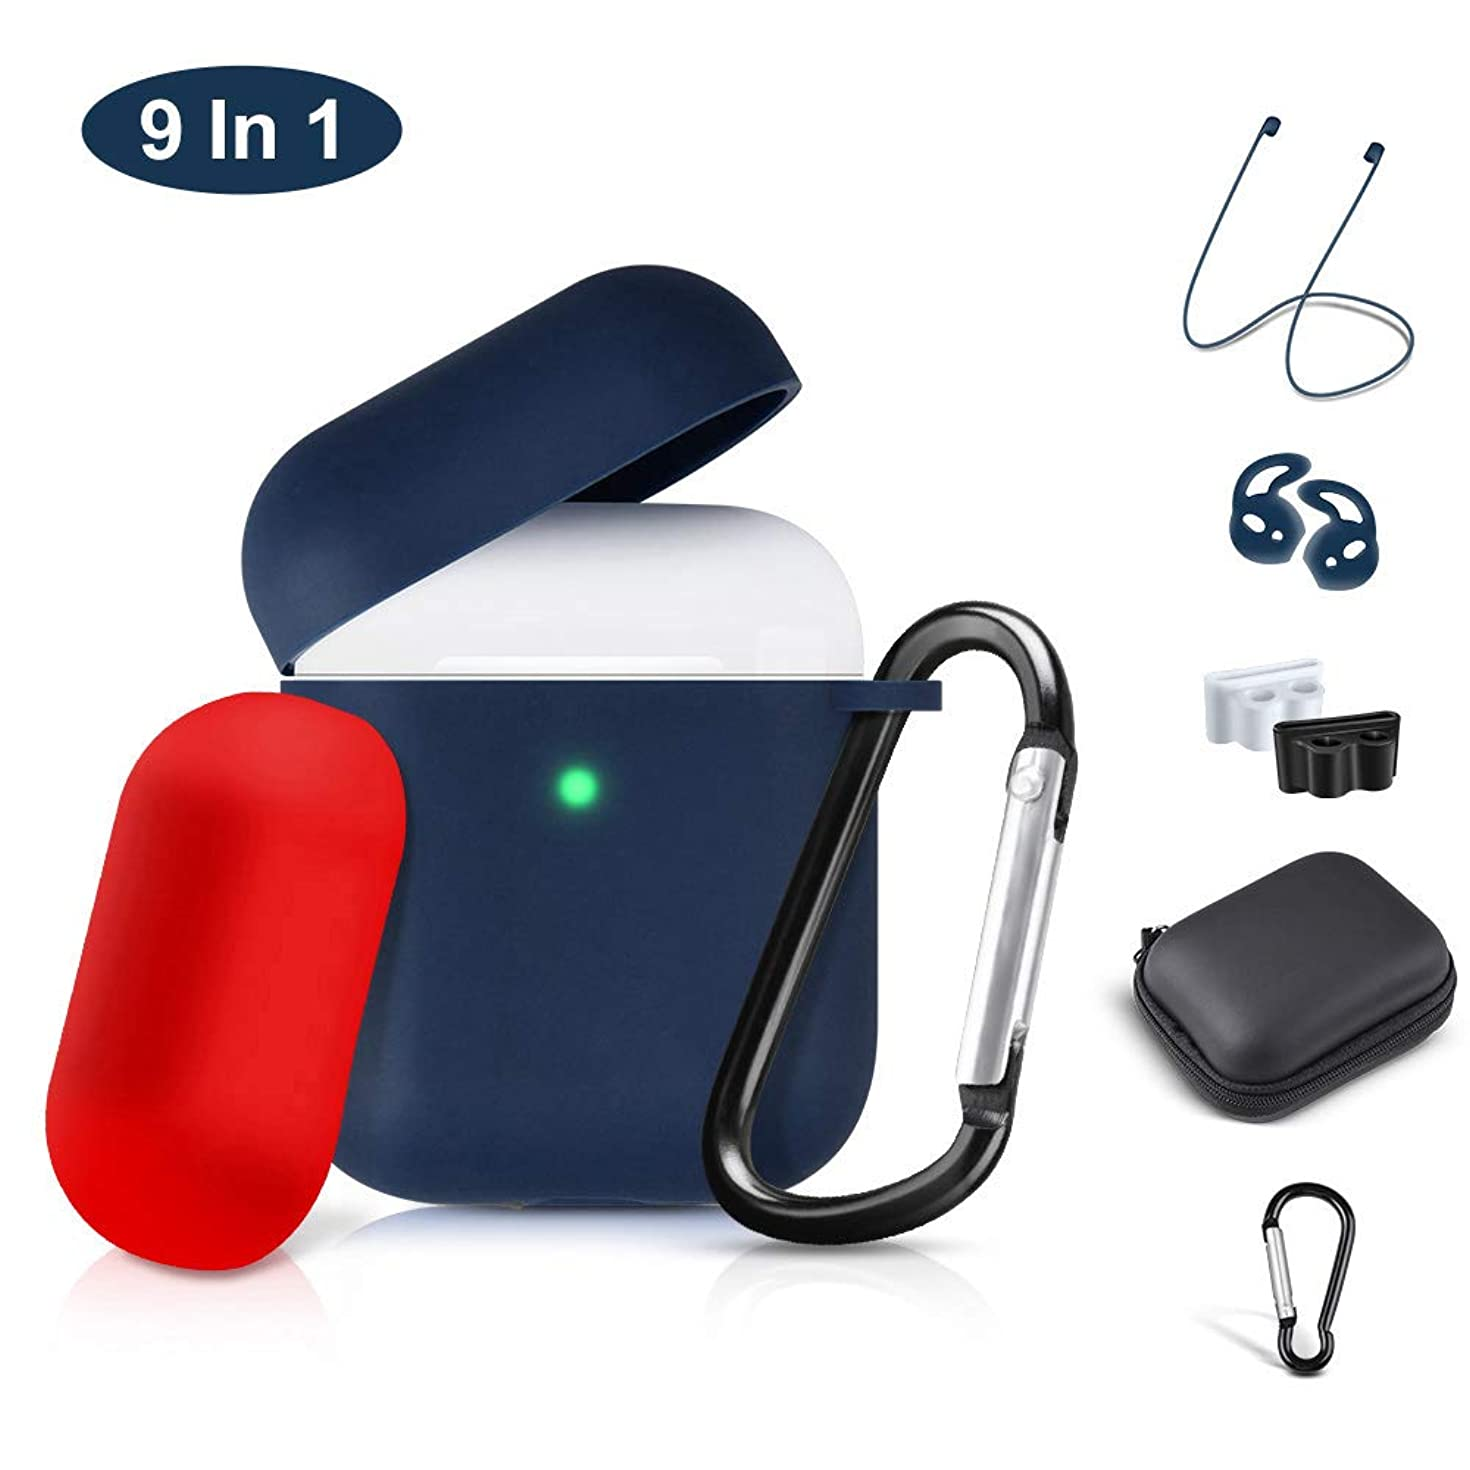 Airpods Case Cover, 2019 Airpod 2 Silicone Case Full Protective Cover Skin 9 in 1 Airpods Accessories for Apple Airpods 2 & 1 Wireless Charging Case, RTAKO Airpod Case Blue (Front LED Visible)